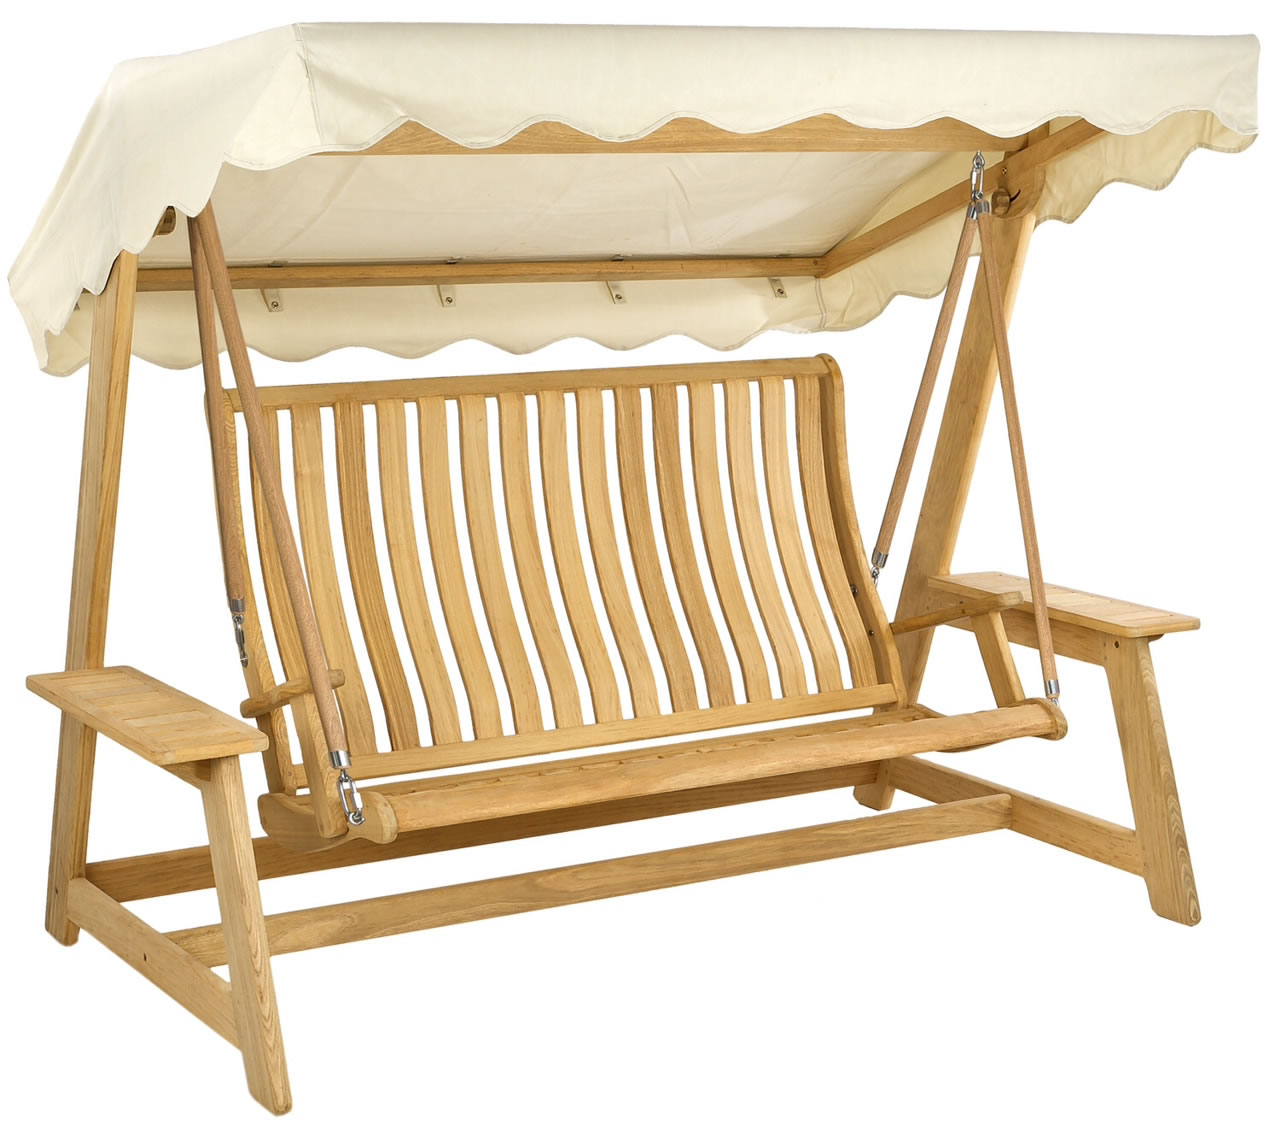 Extra image of Alexander Rose FSC Roble Swing Seat